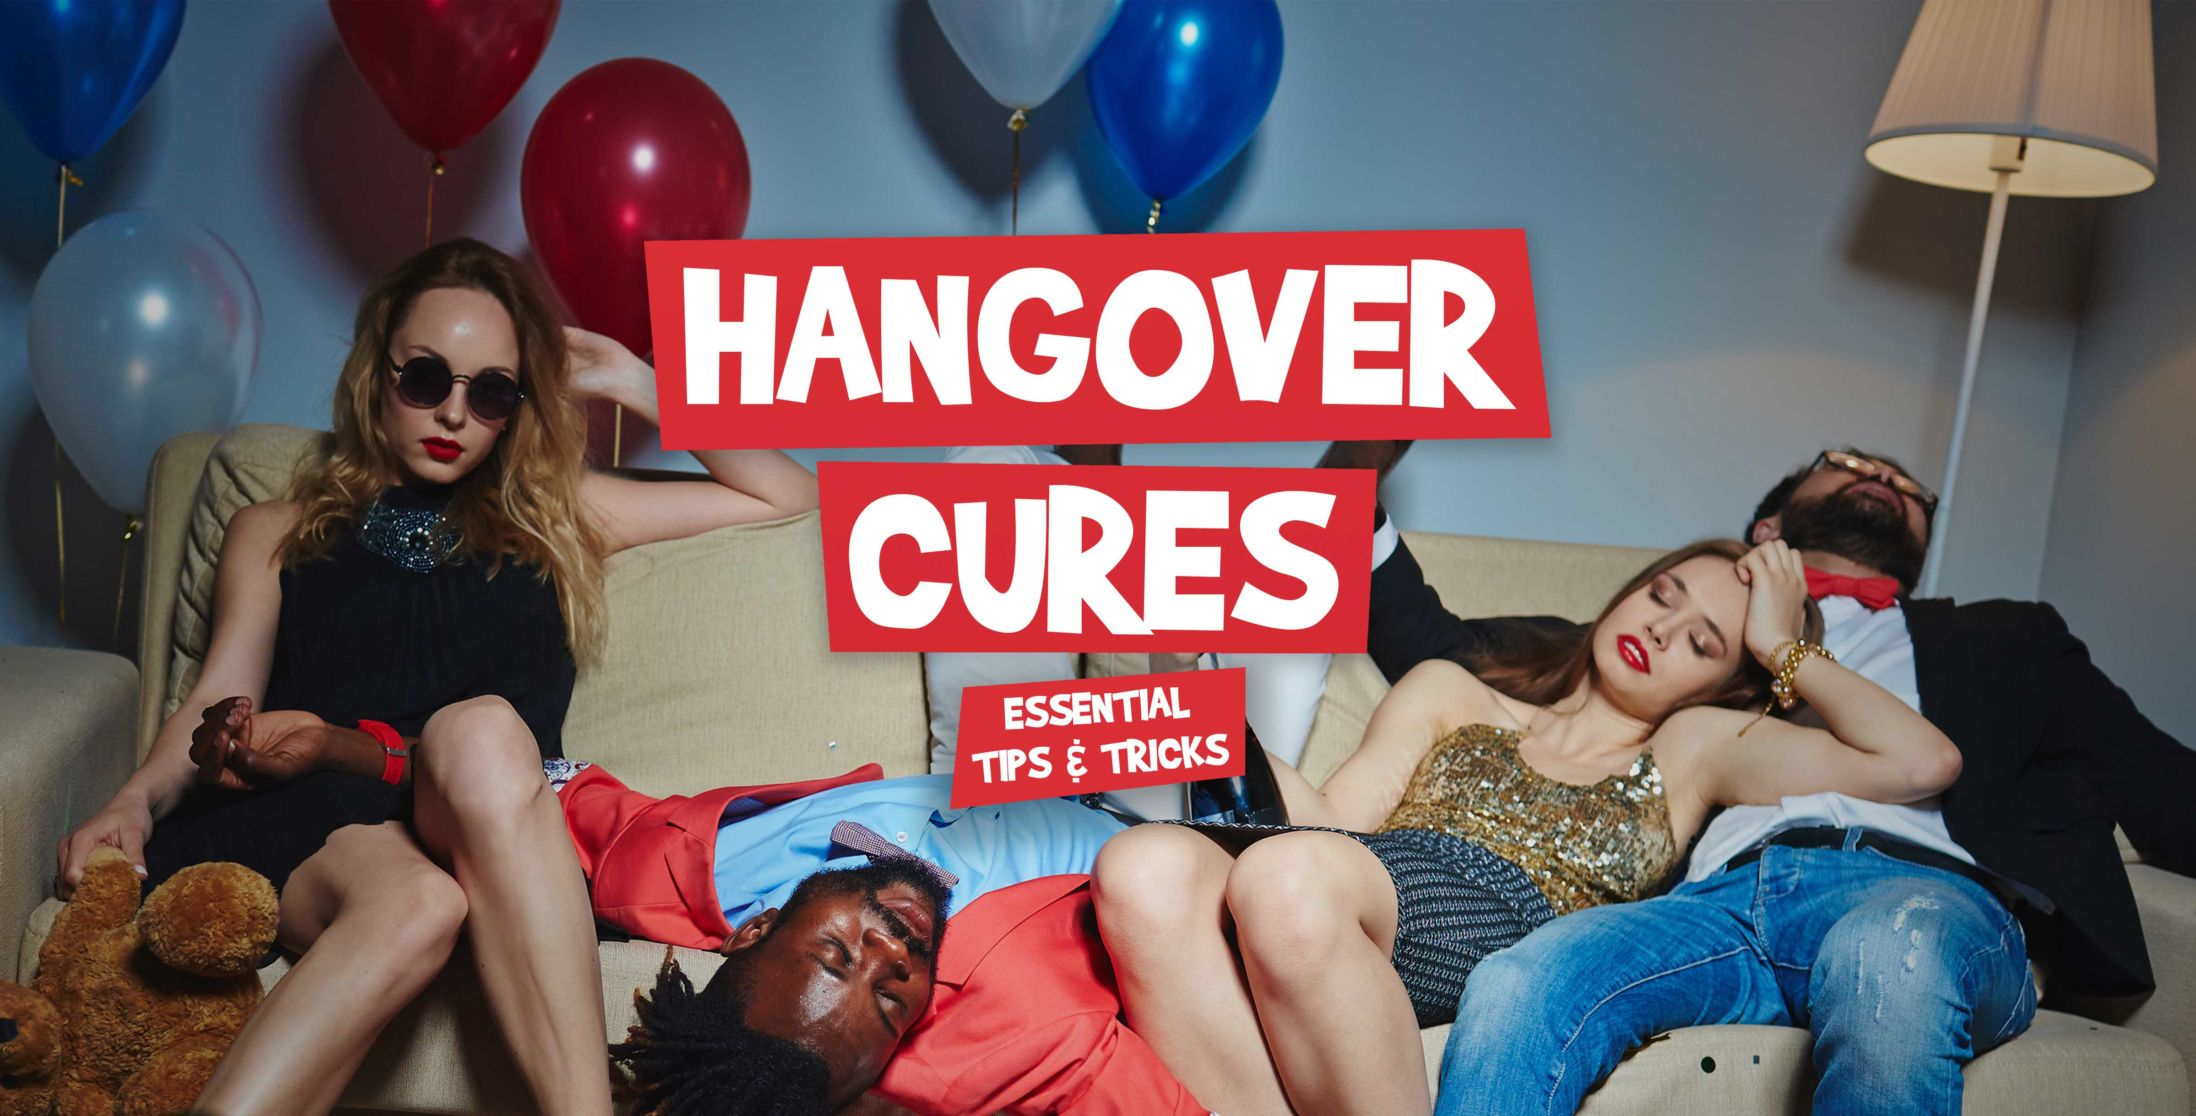 New Year Hangover Cures